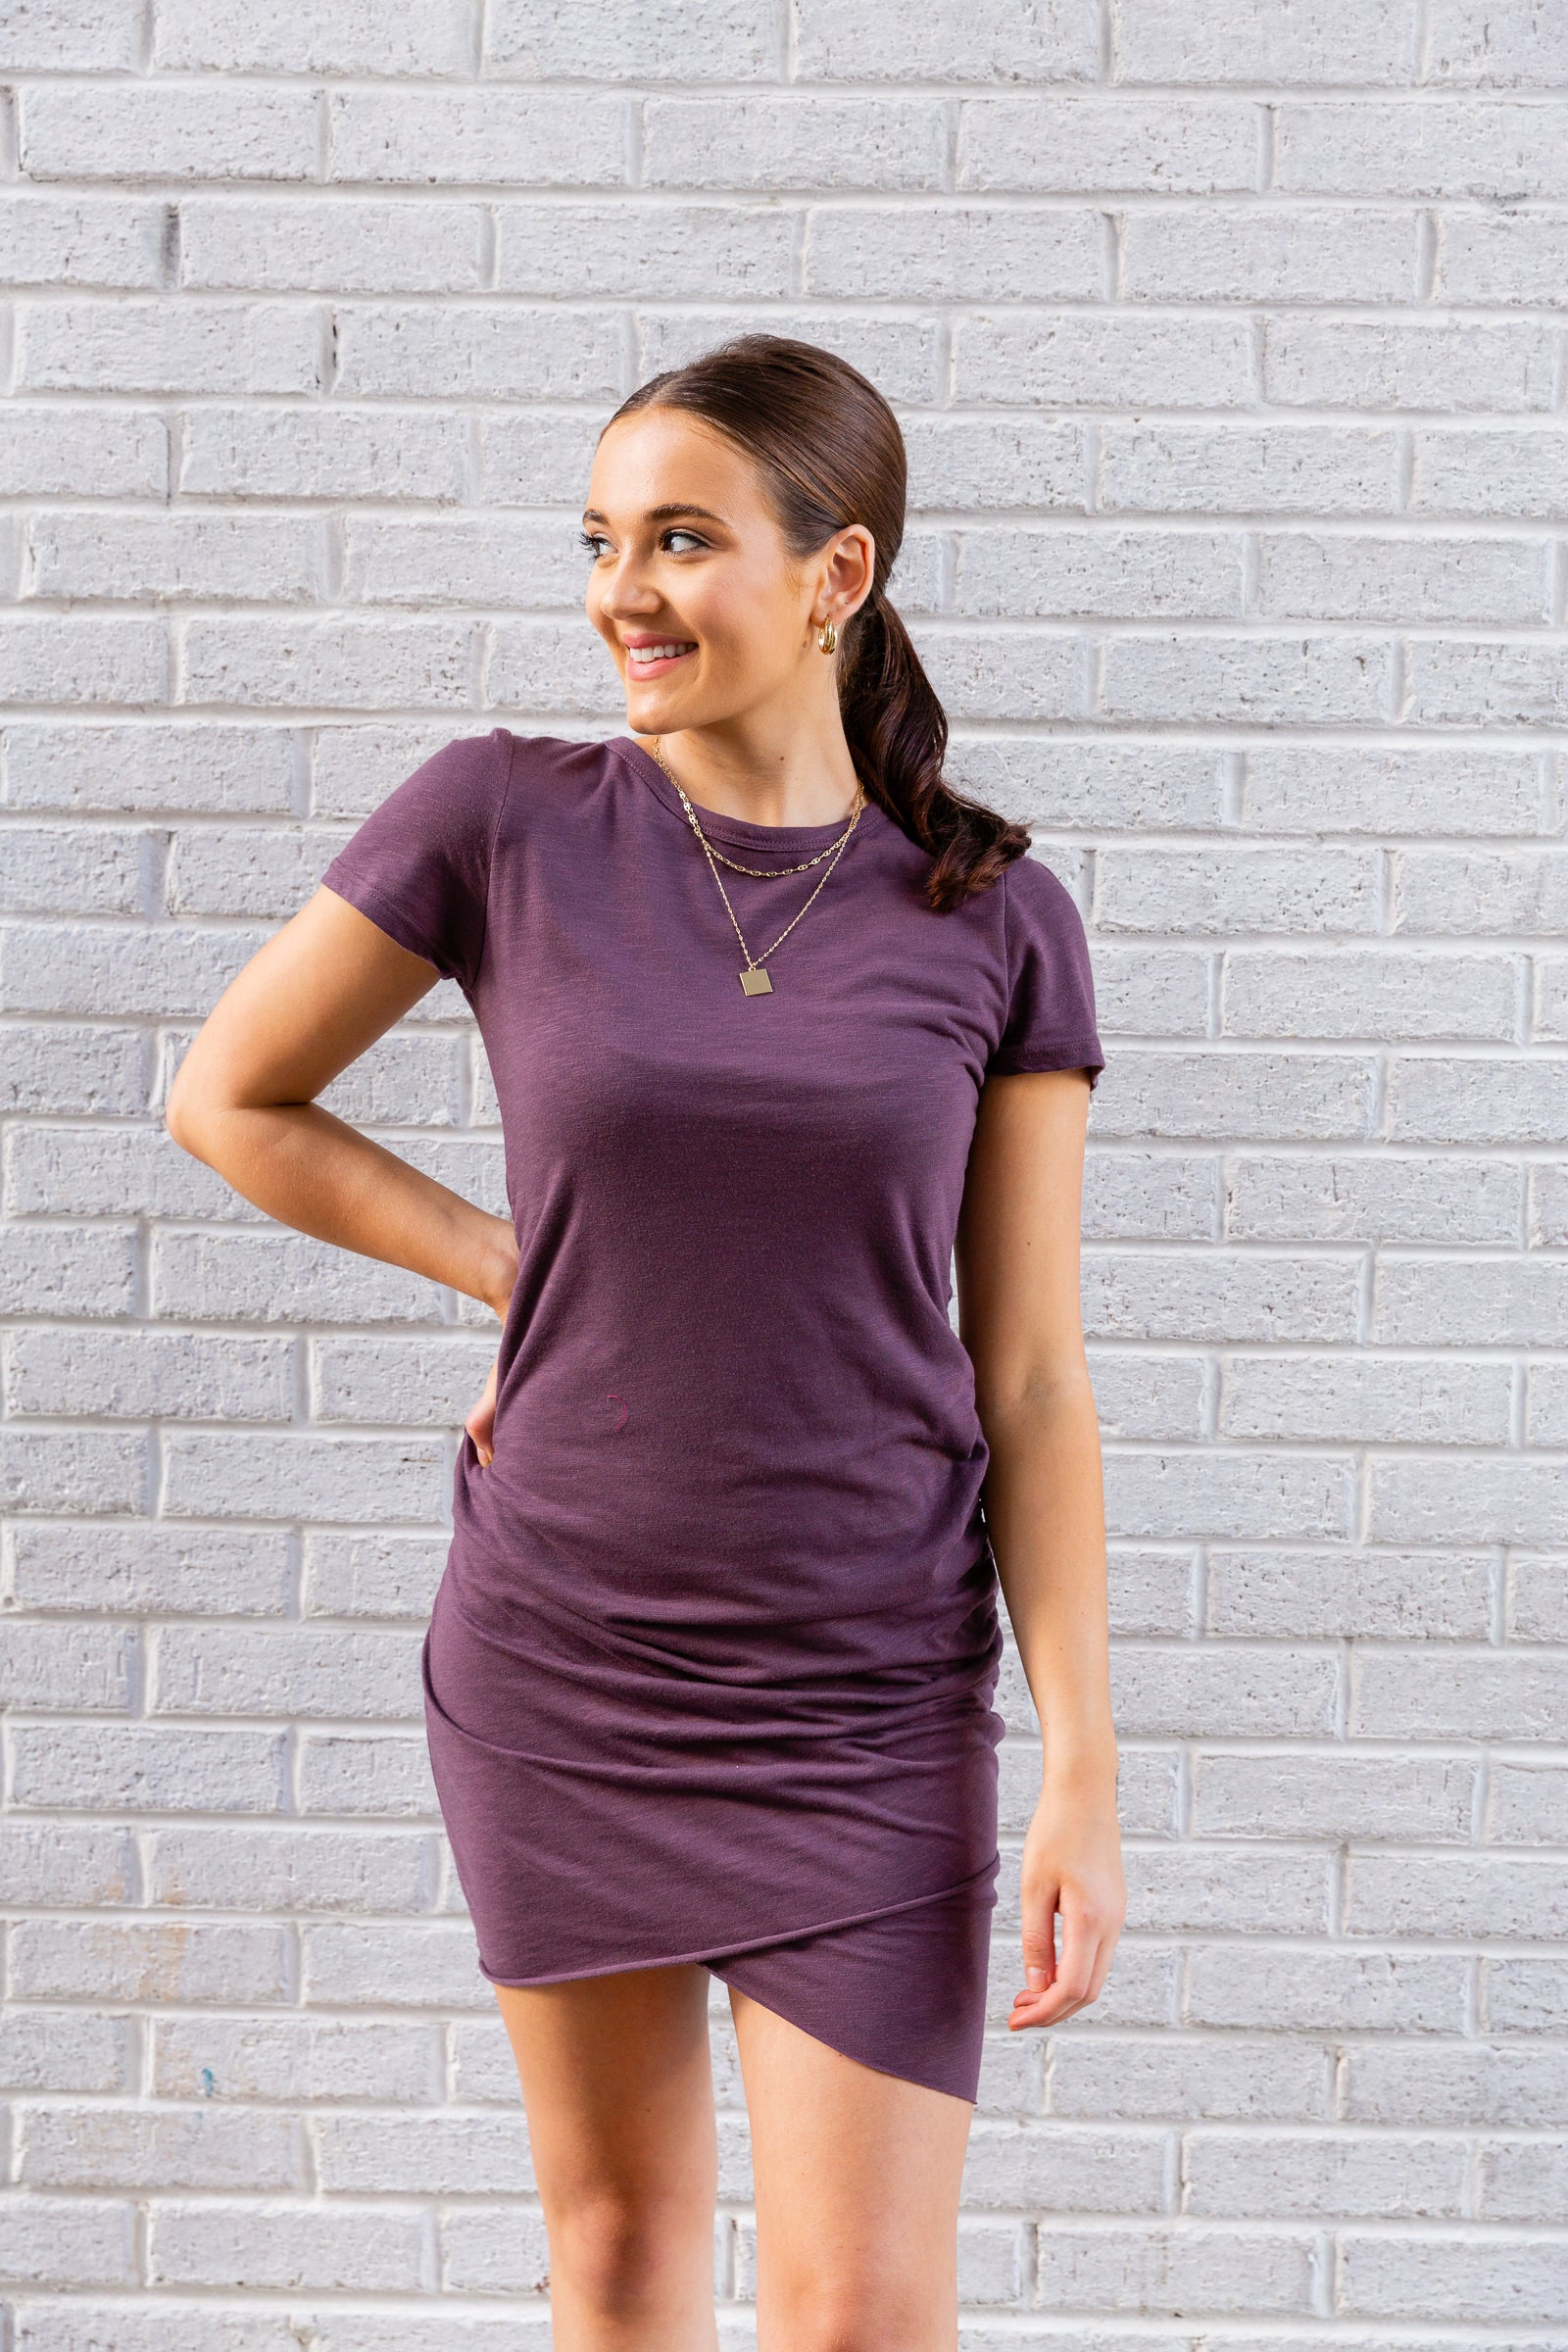 Short sleeves attach to a u-neckline and lead to a loose bodice and skirt silhouette with ruching details down one side of the dress for an asymmetrical hem at the bottom.